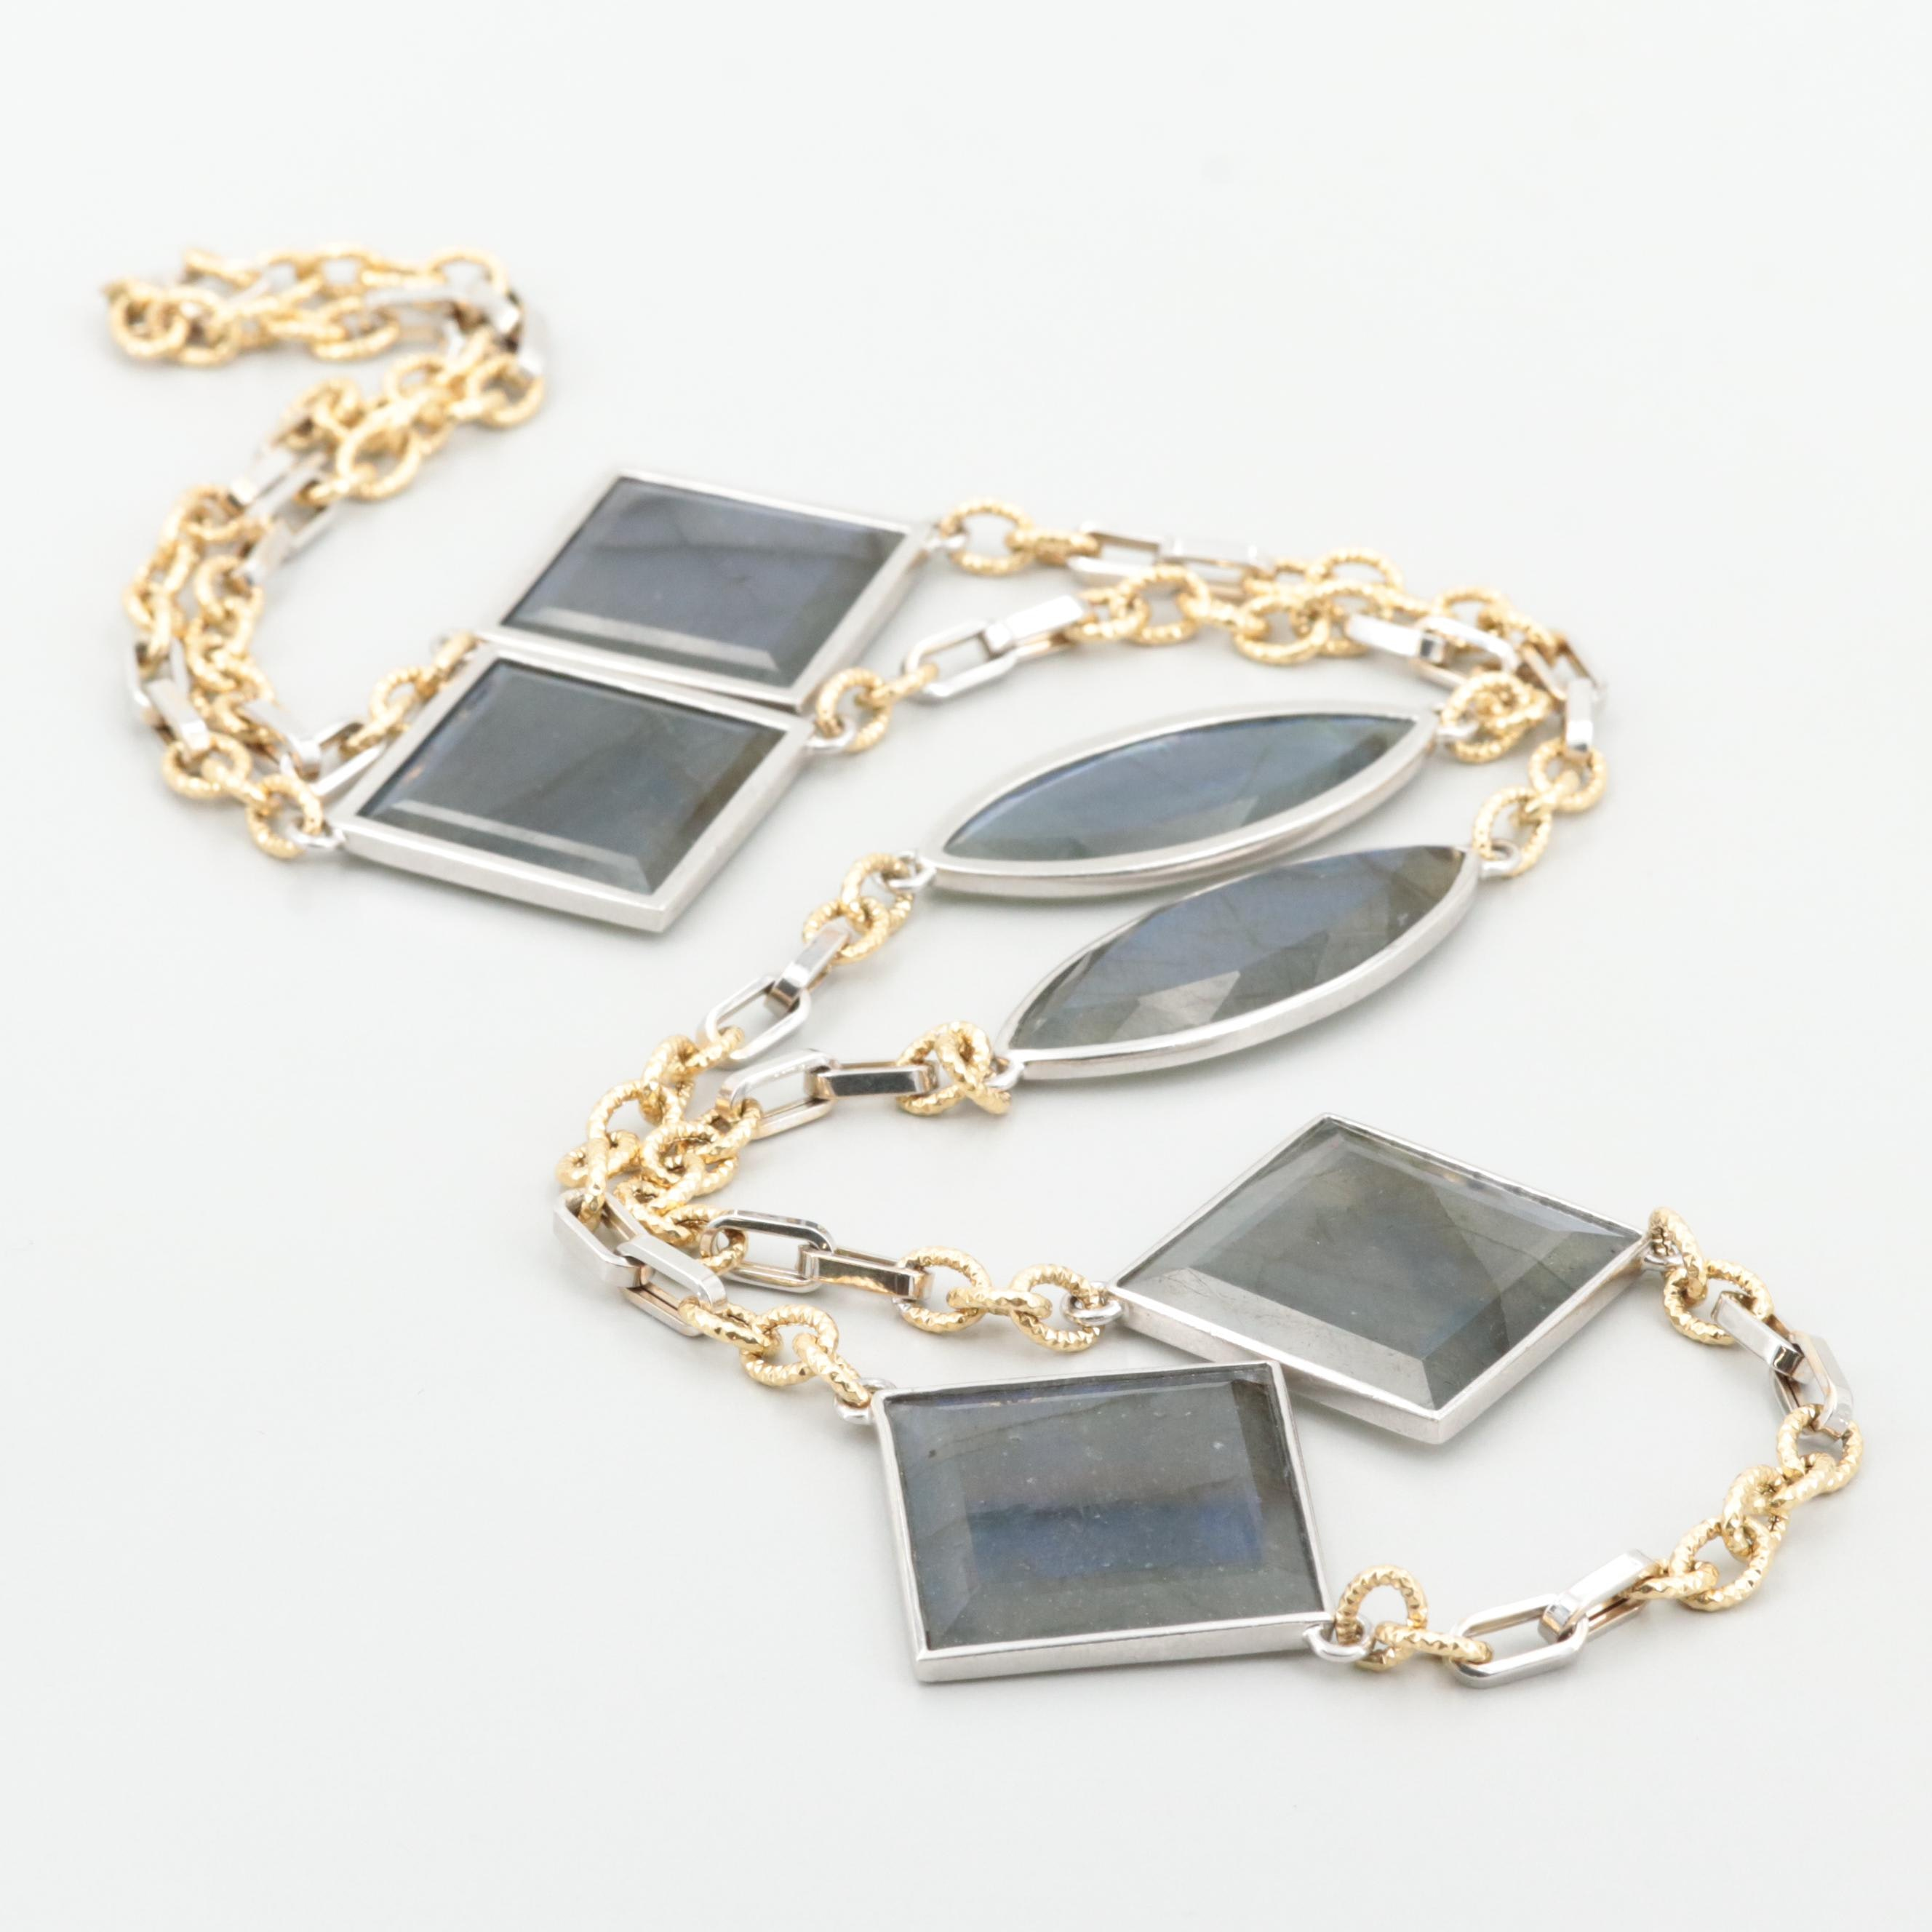 18K White and Yellow Gold Labradorite Necklace with Sterling Silver Accents